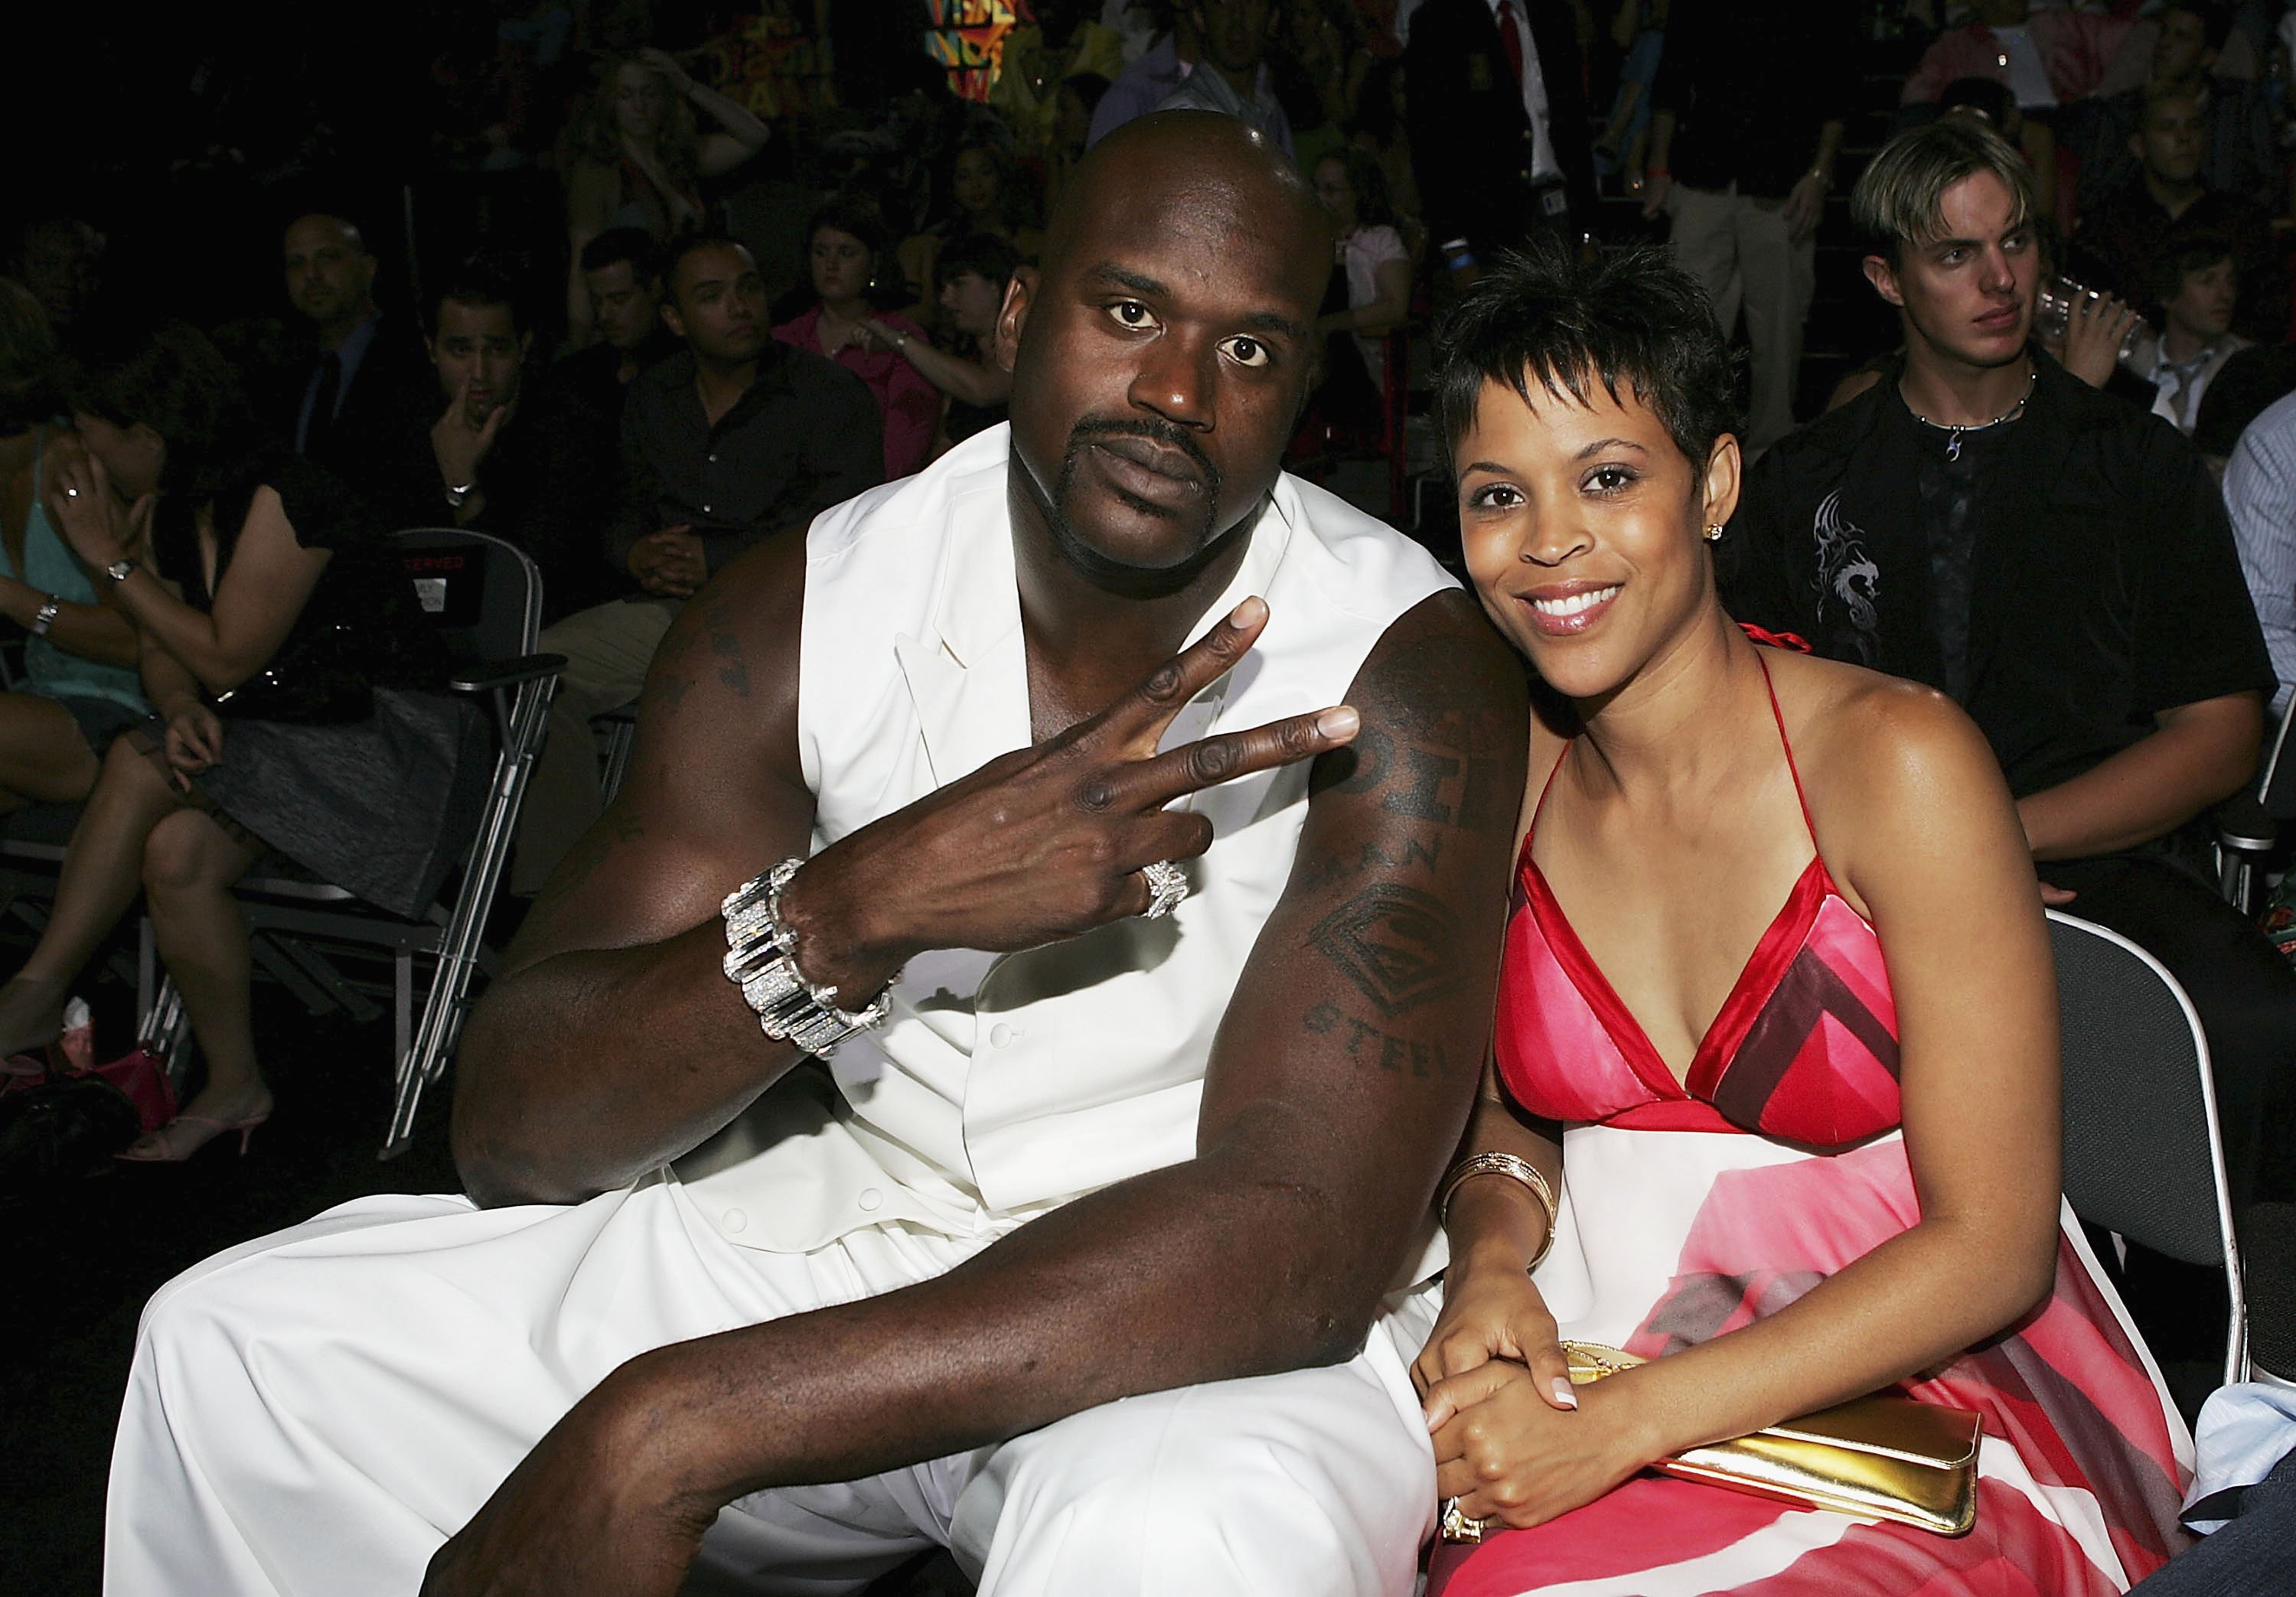 Shaquille O'Neal & Shaunie O'Neal at the MTV Video Music Awards on Aug. 29, 2004 in Miami. | Photo: Getty Images